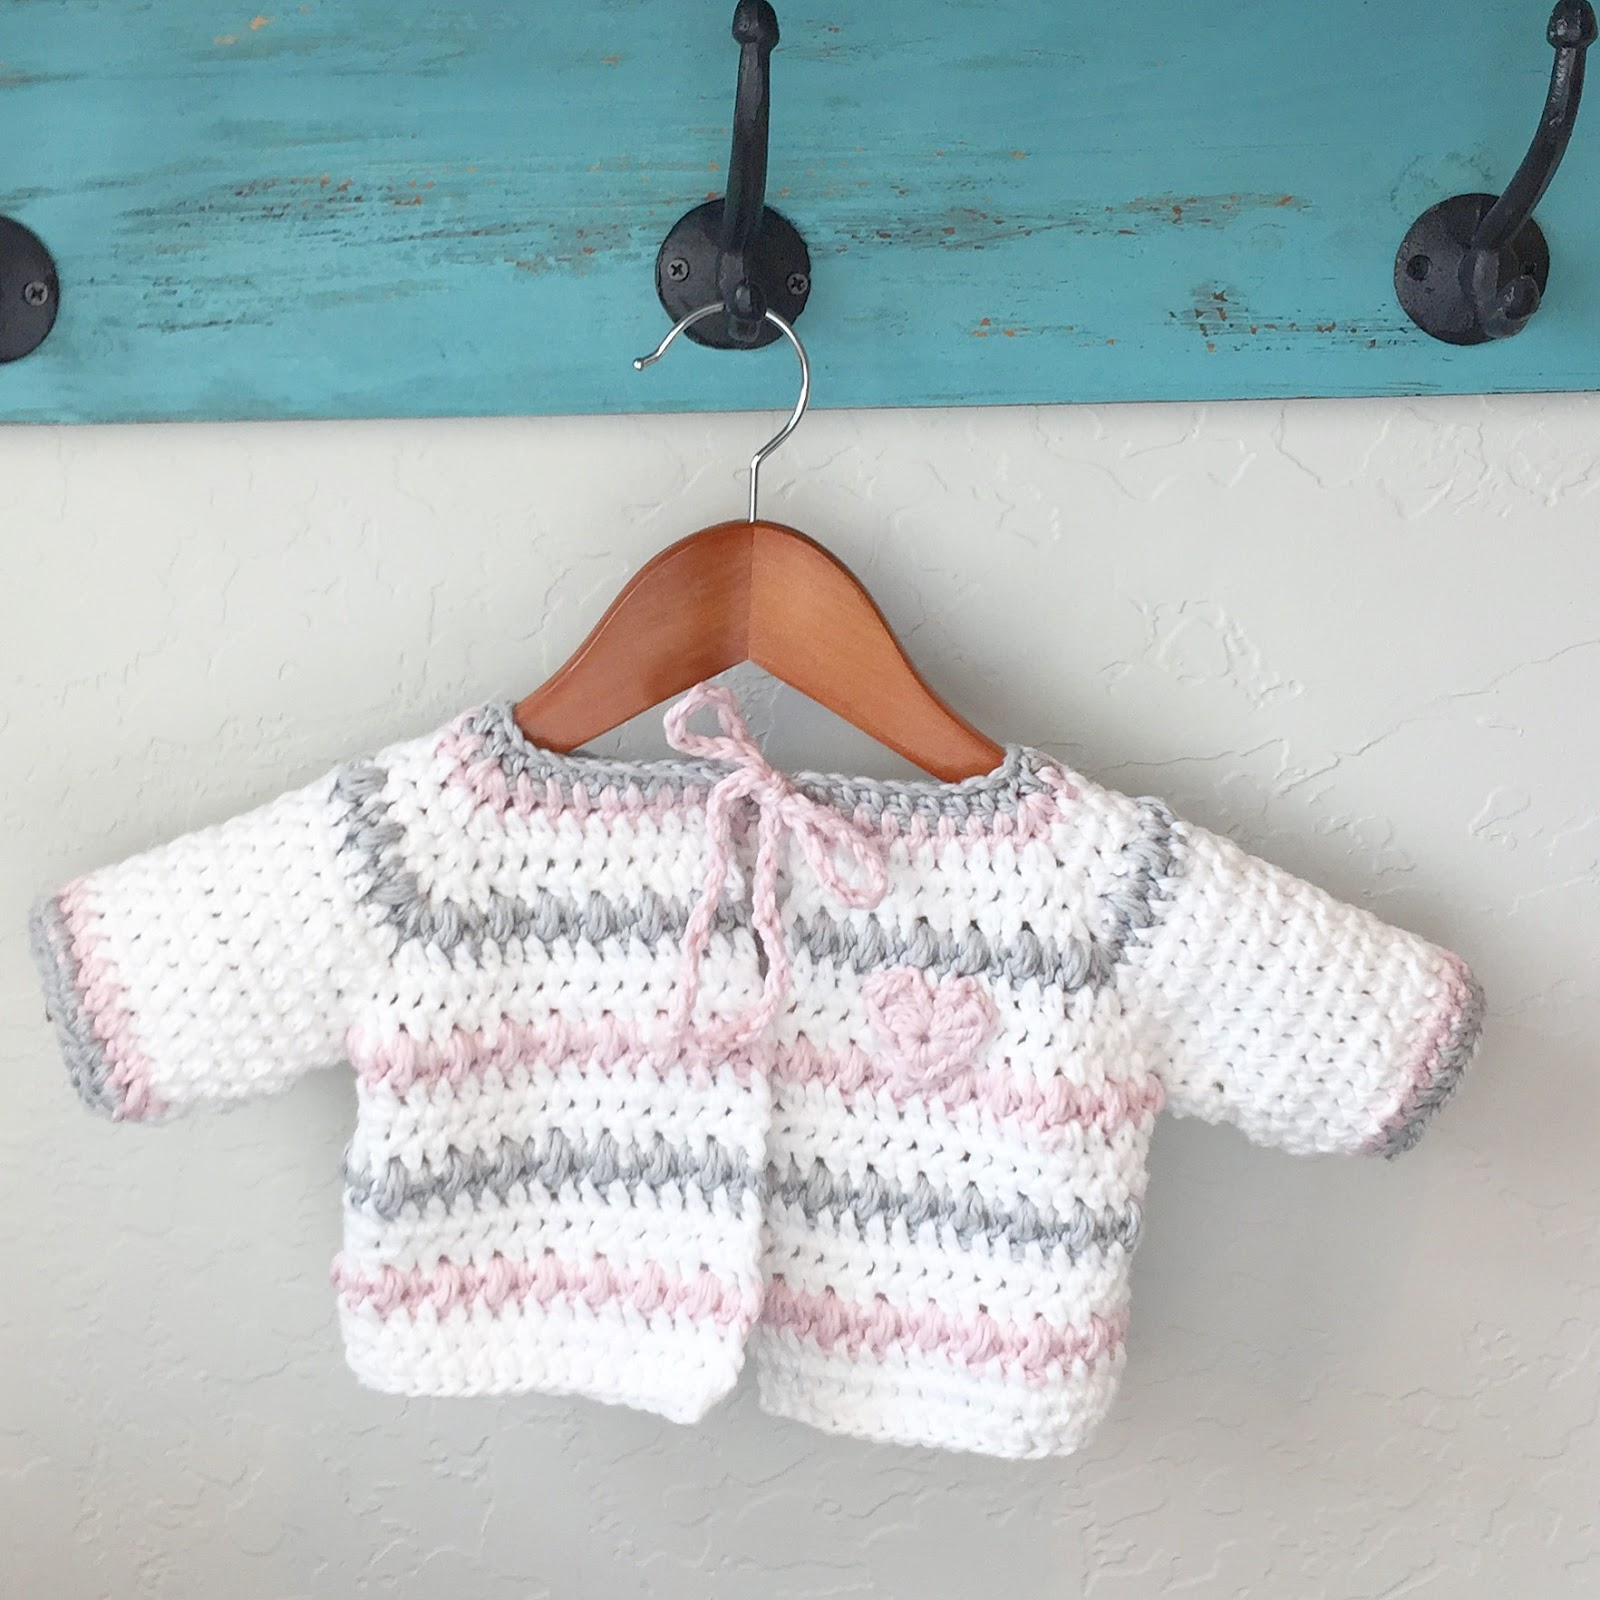 Crochet Baby Sweater In White Pink And Gray Daisy Farm Crafts